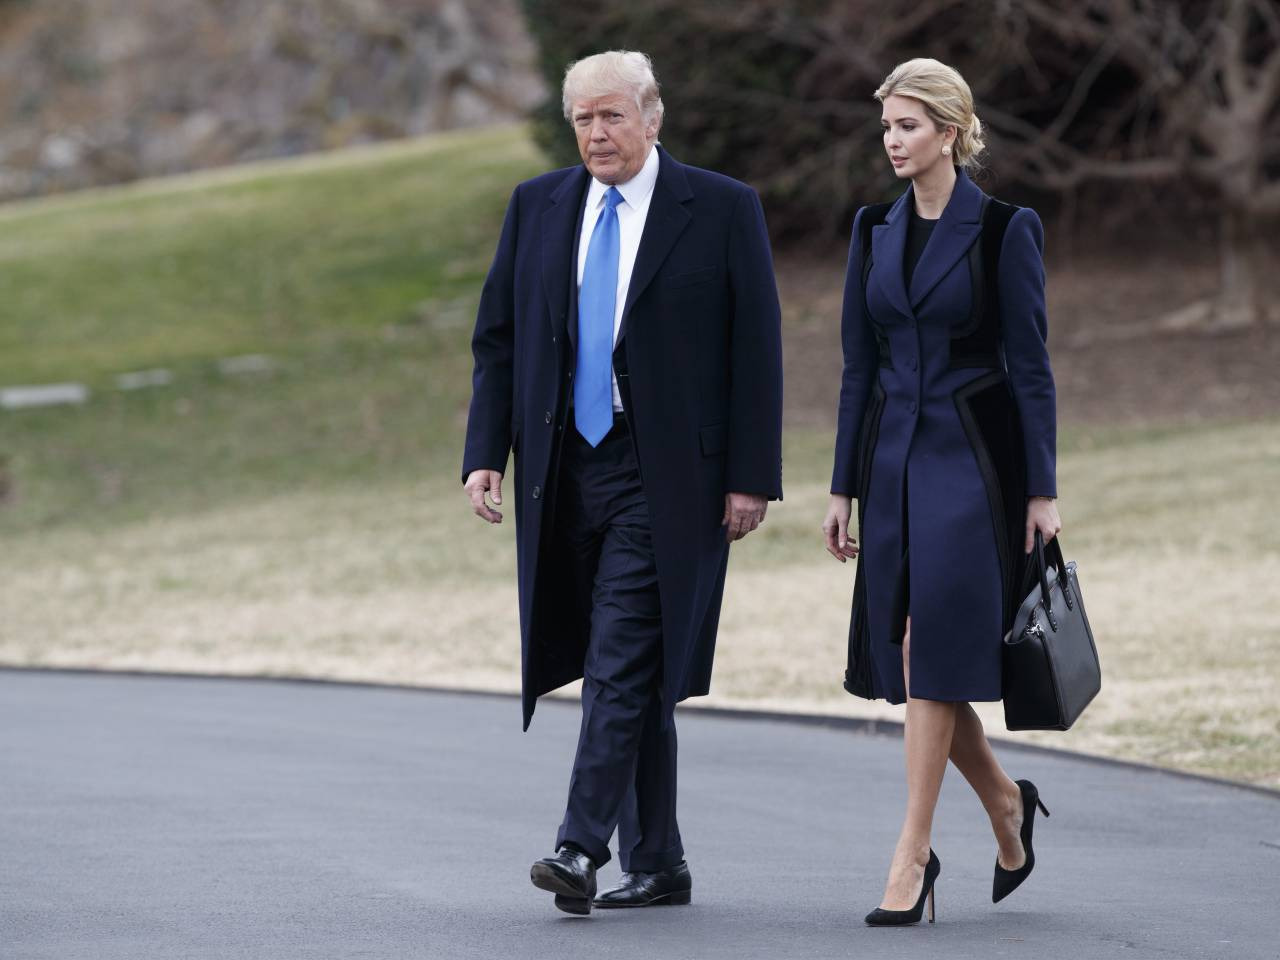 Ivanka at the White House: Ivanka Trump has been granted a ...